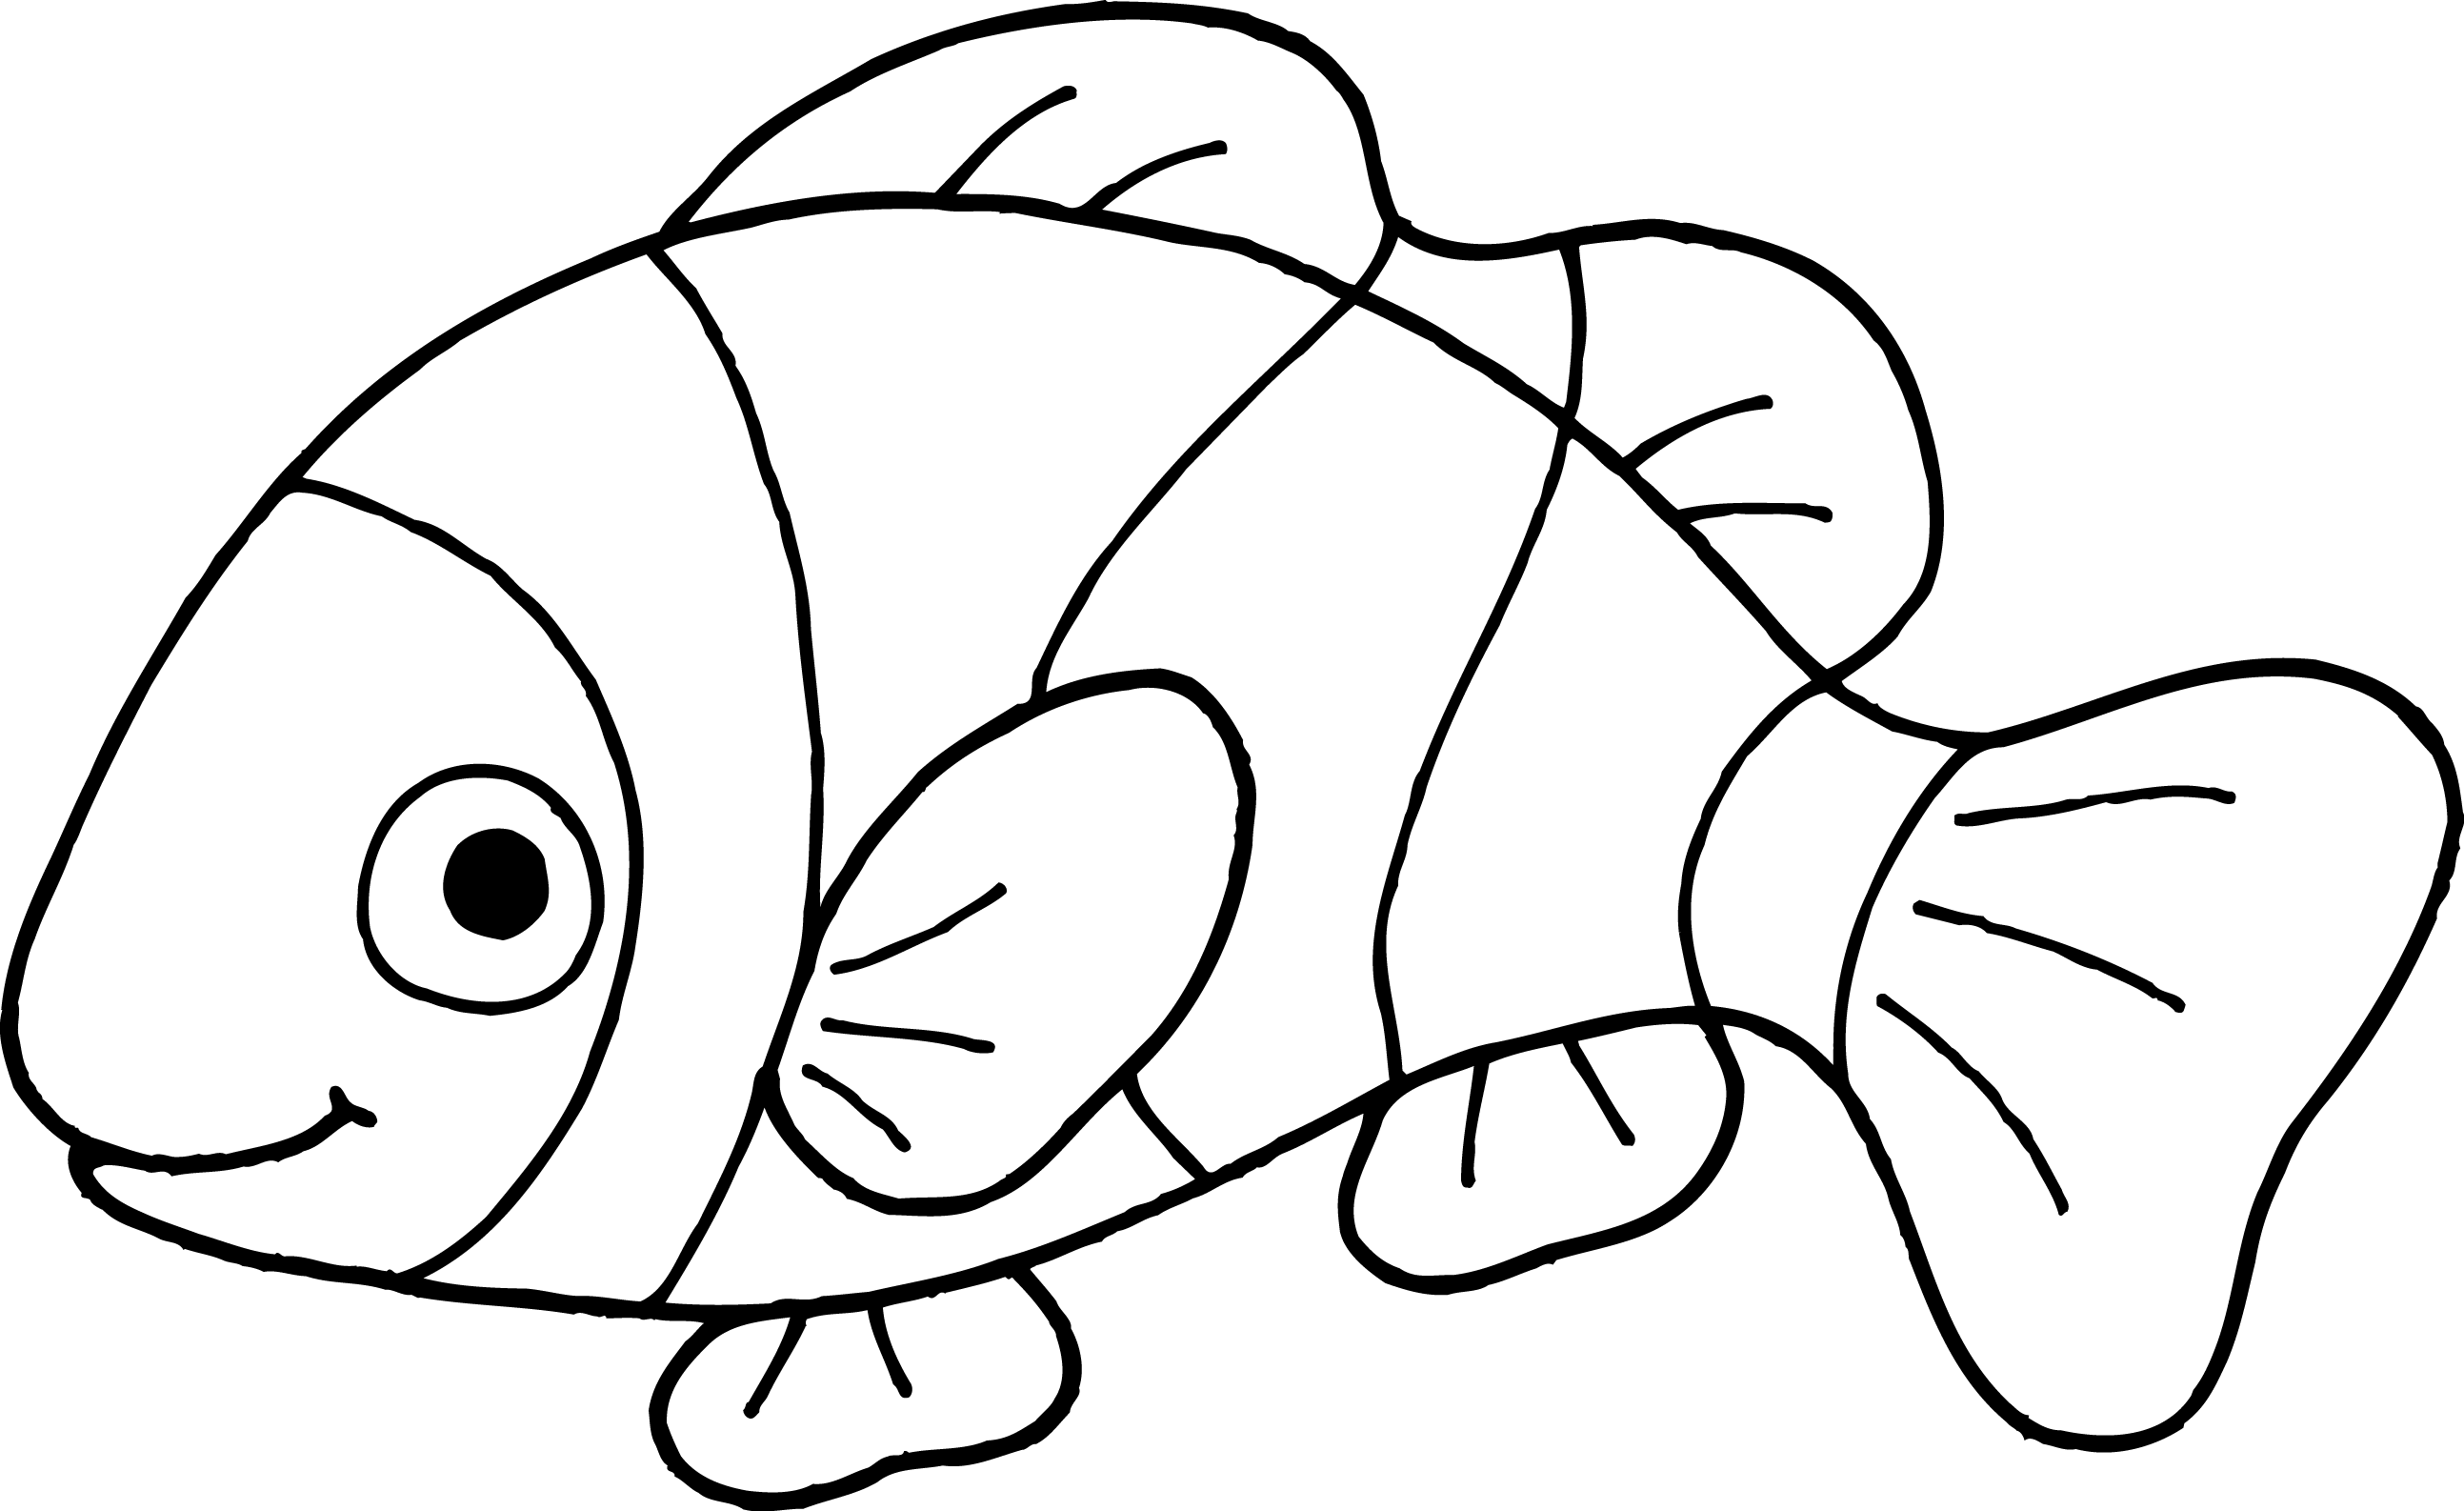 Ocean fish clipart black and white clipart black and white stock Black-and-white, often abbreviated B/W or B&W, is a term referring ... clipart black and white stock